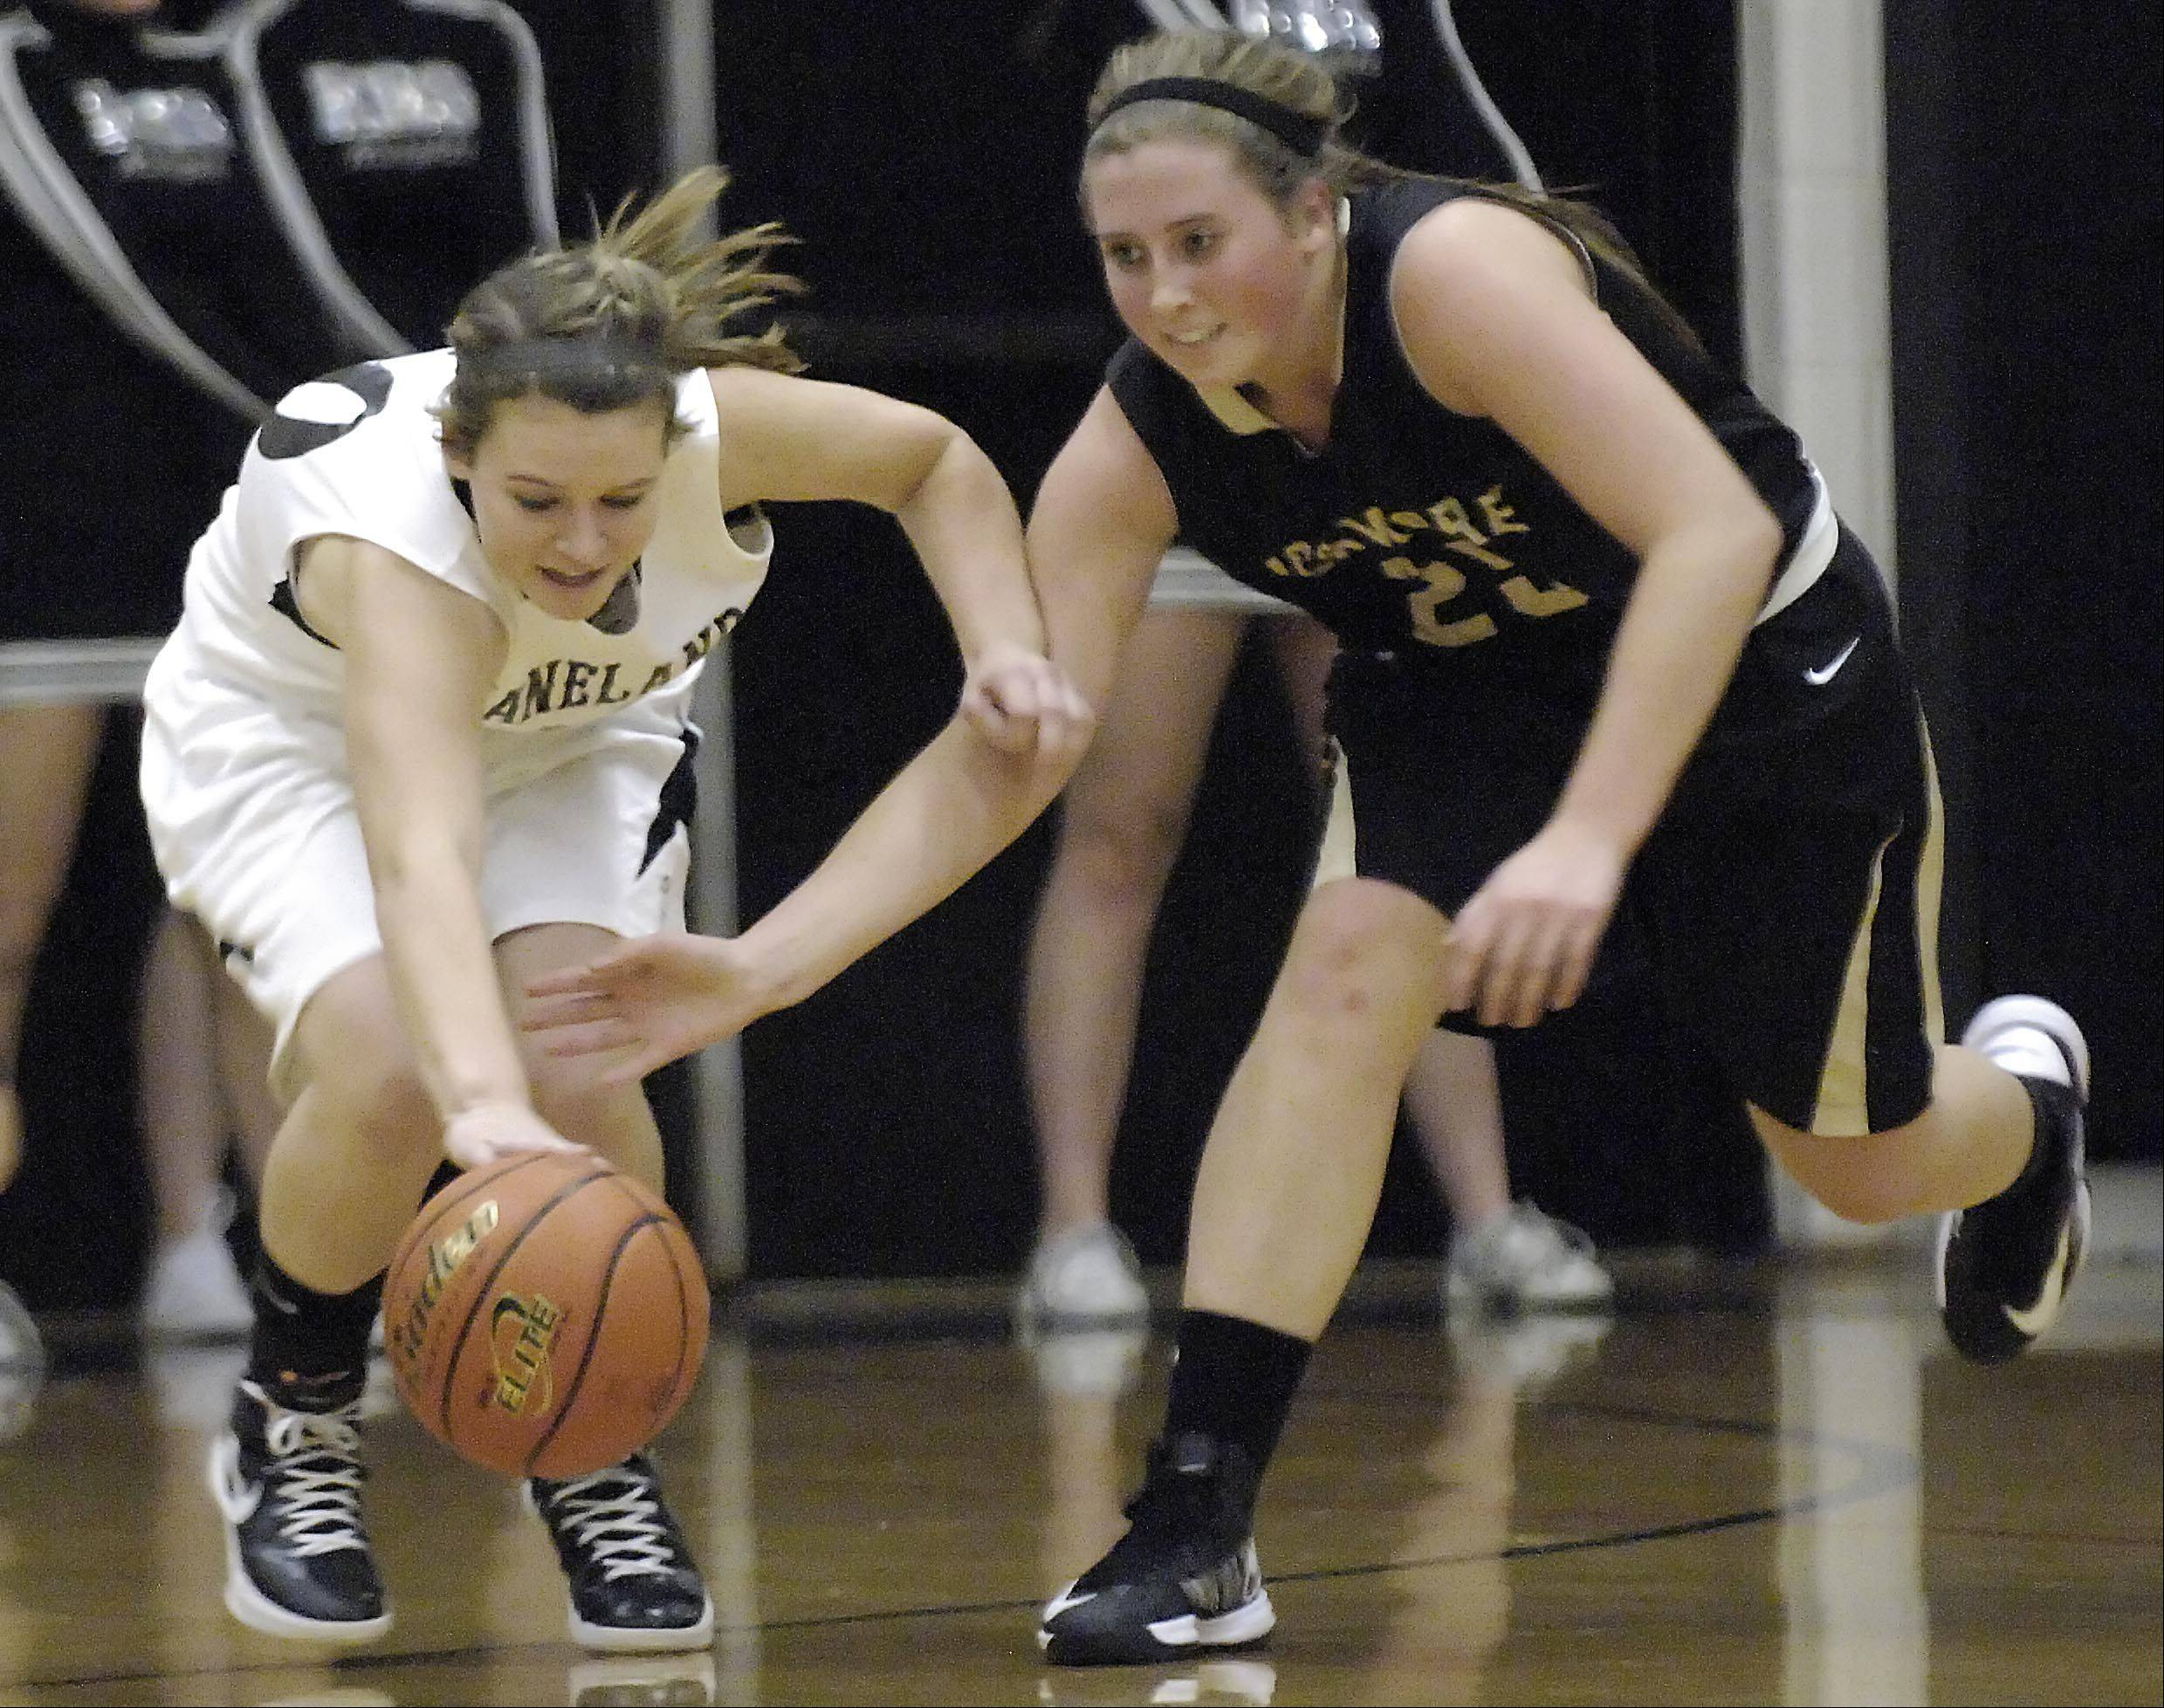 Kaneland's Allyson O'Herron gets to a loose ball before Sycamore's Bailey Gilbert Thursday in Maple Park.